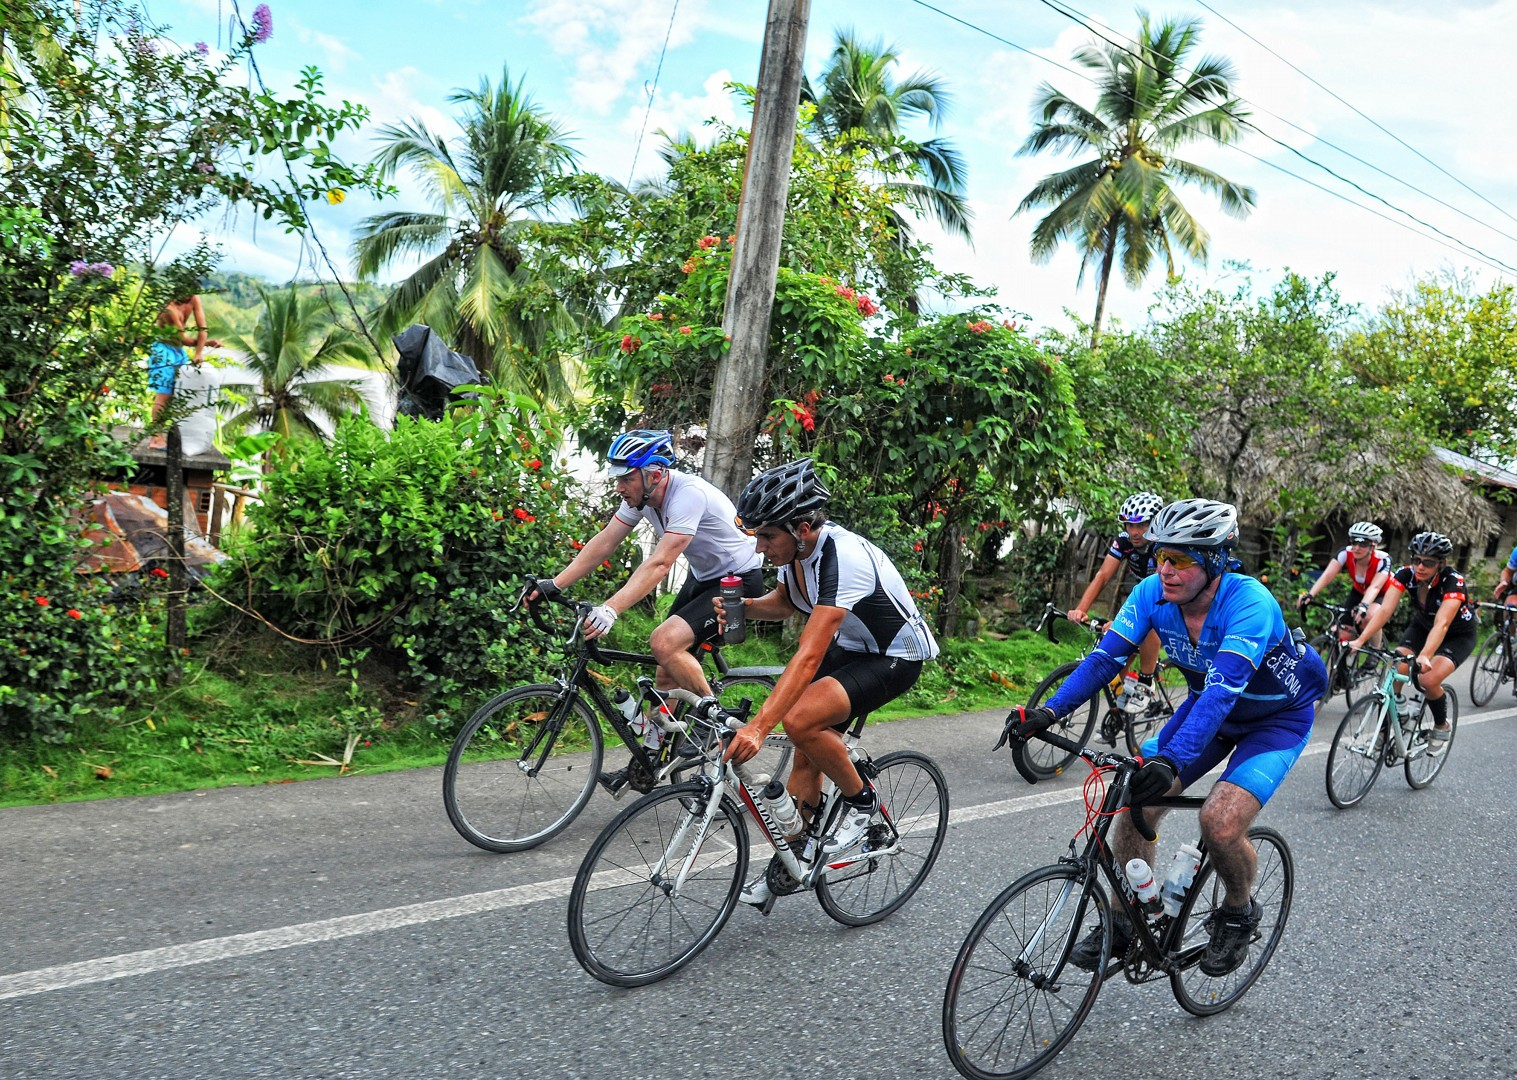 andean-mountains-emerald-mountains-colombia-guided-road-cycling-holiday.jpg - Colombia - Tres Cordilleras - Guided Road Cycling Holiday - Road Cycling